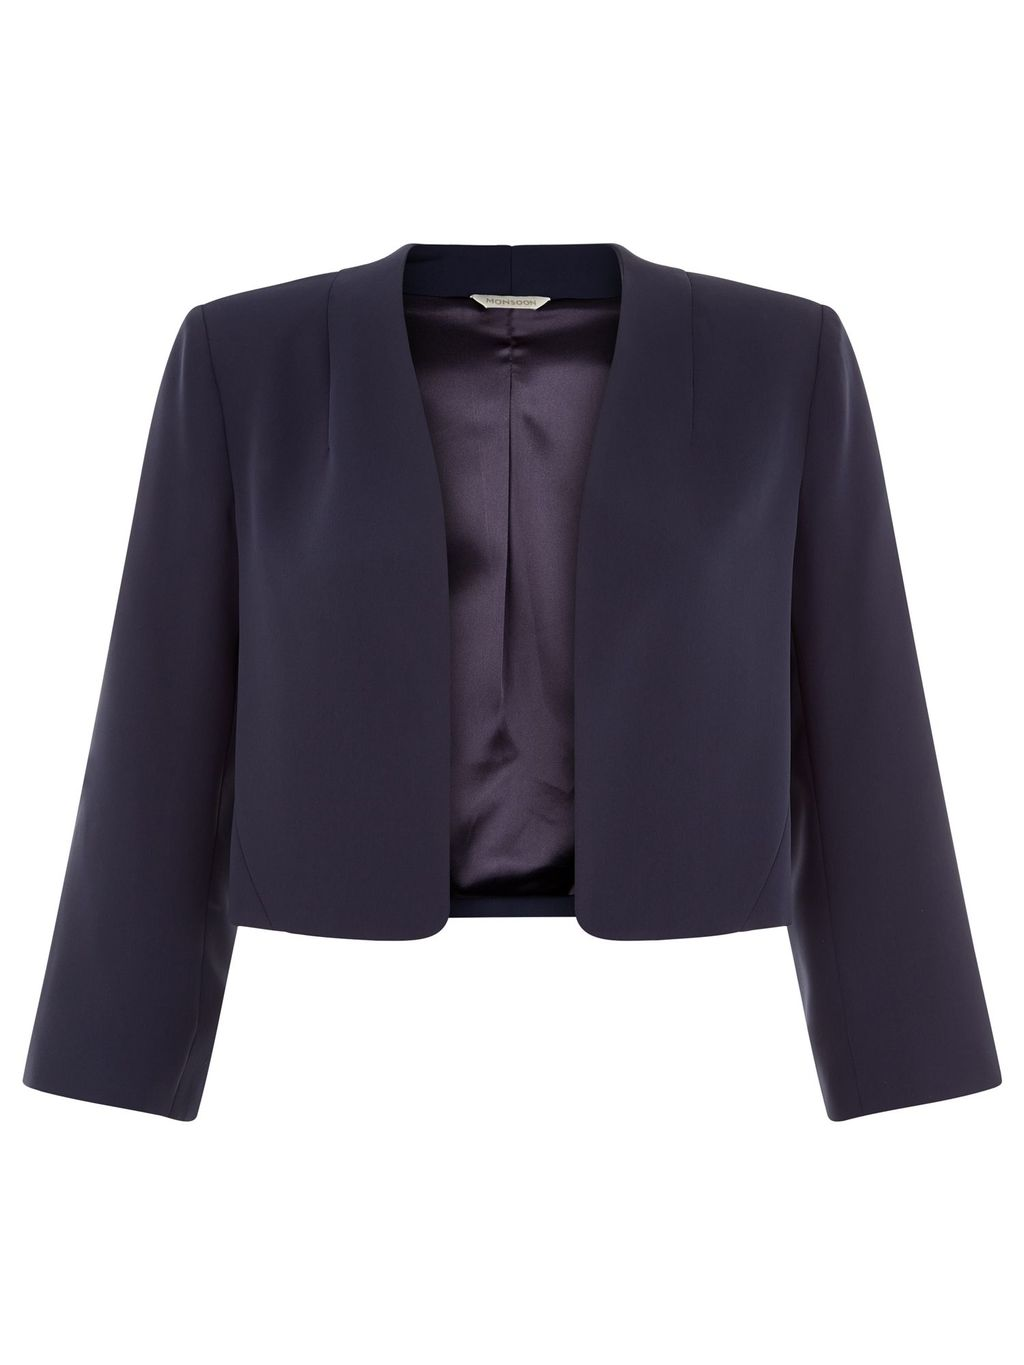 Summer Jacket, Navy - pattern: plain; style: single breasted blazer; collar: round collar/collarless; predominant colour: navy; occasions: evening, occasion; length: standard; fit: tailored/fitted; fibres: polyester/polyamide - 100%; sleeve length: 3/4 length; sleeve style: standard; collar break: low/open; pattern type: fabric; texture group: woven light midweight; season: s/s 2016; wardrobe: event